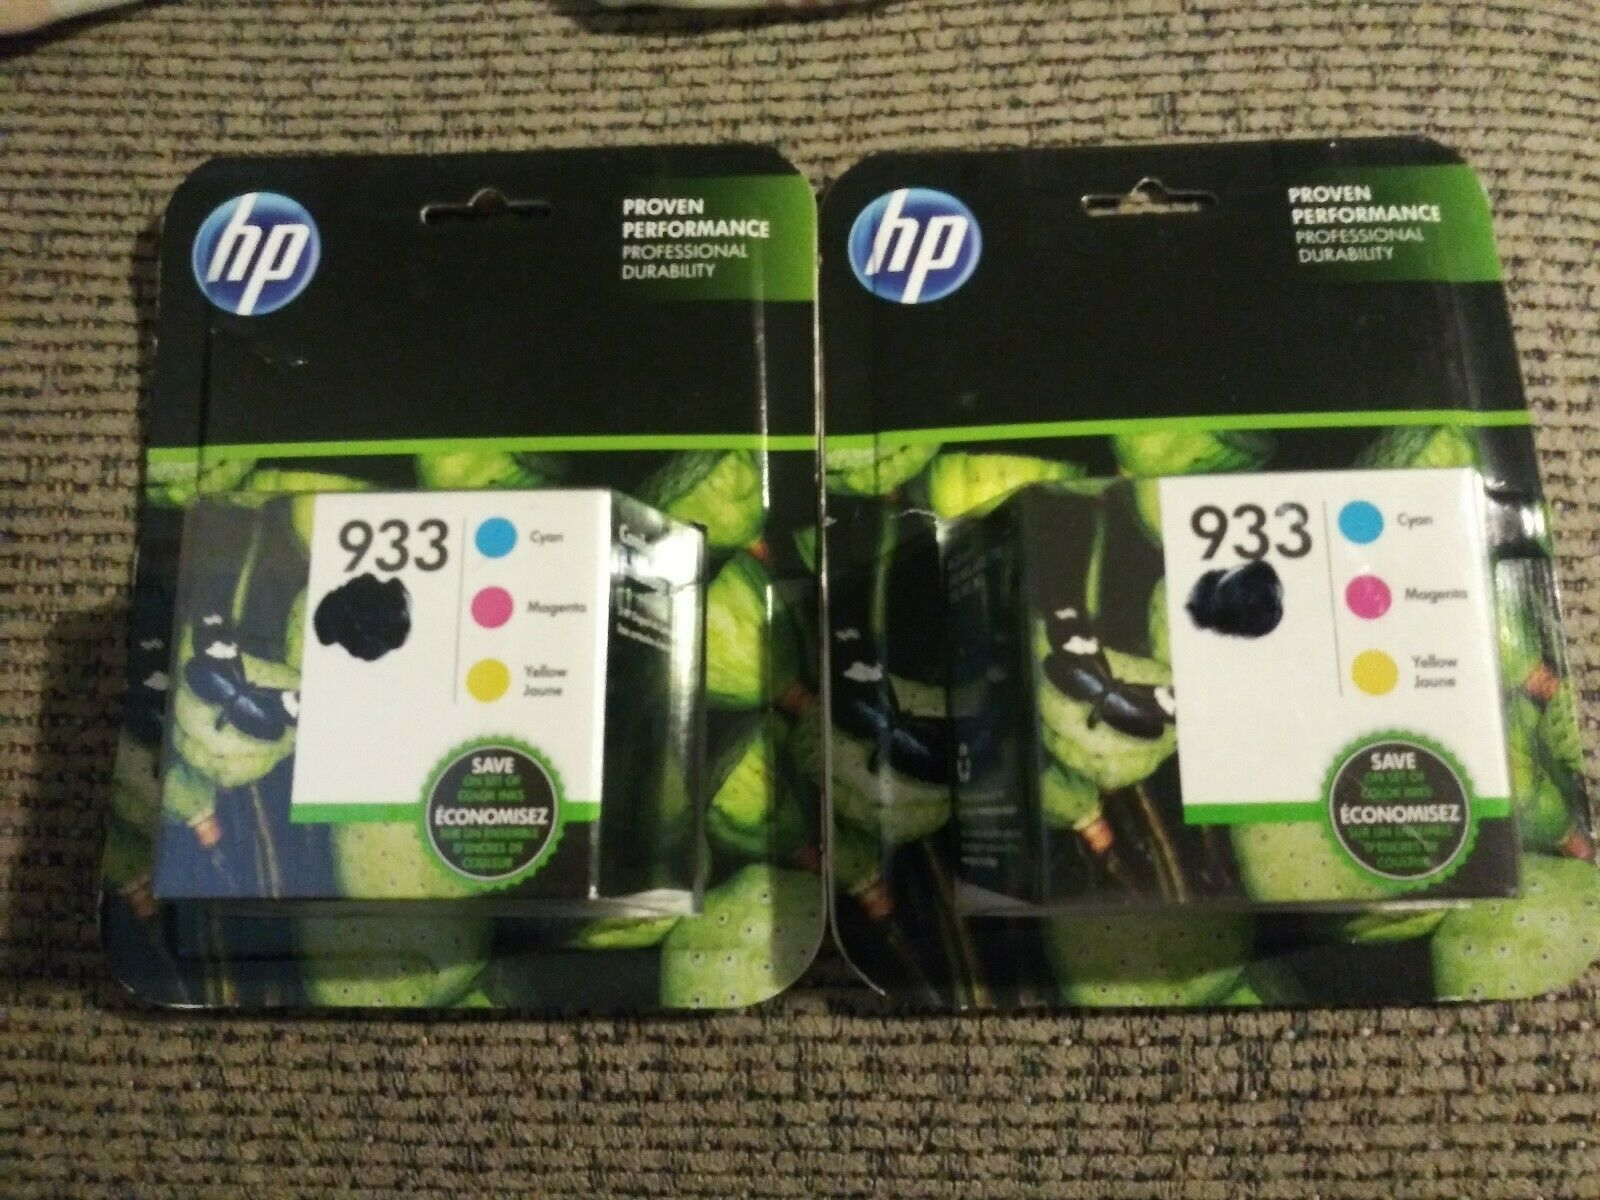 2x Genuine OEM HP 933 Tri-Color Cyan/Magenta/Yellow Ink Cartridges Exp 07/2019+